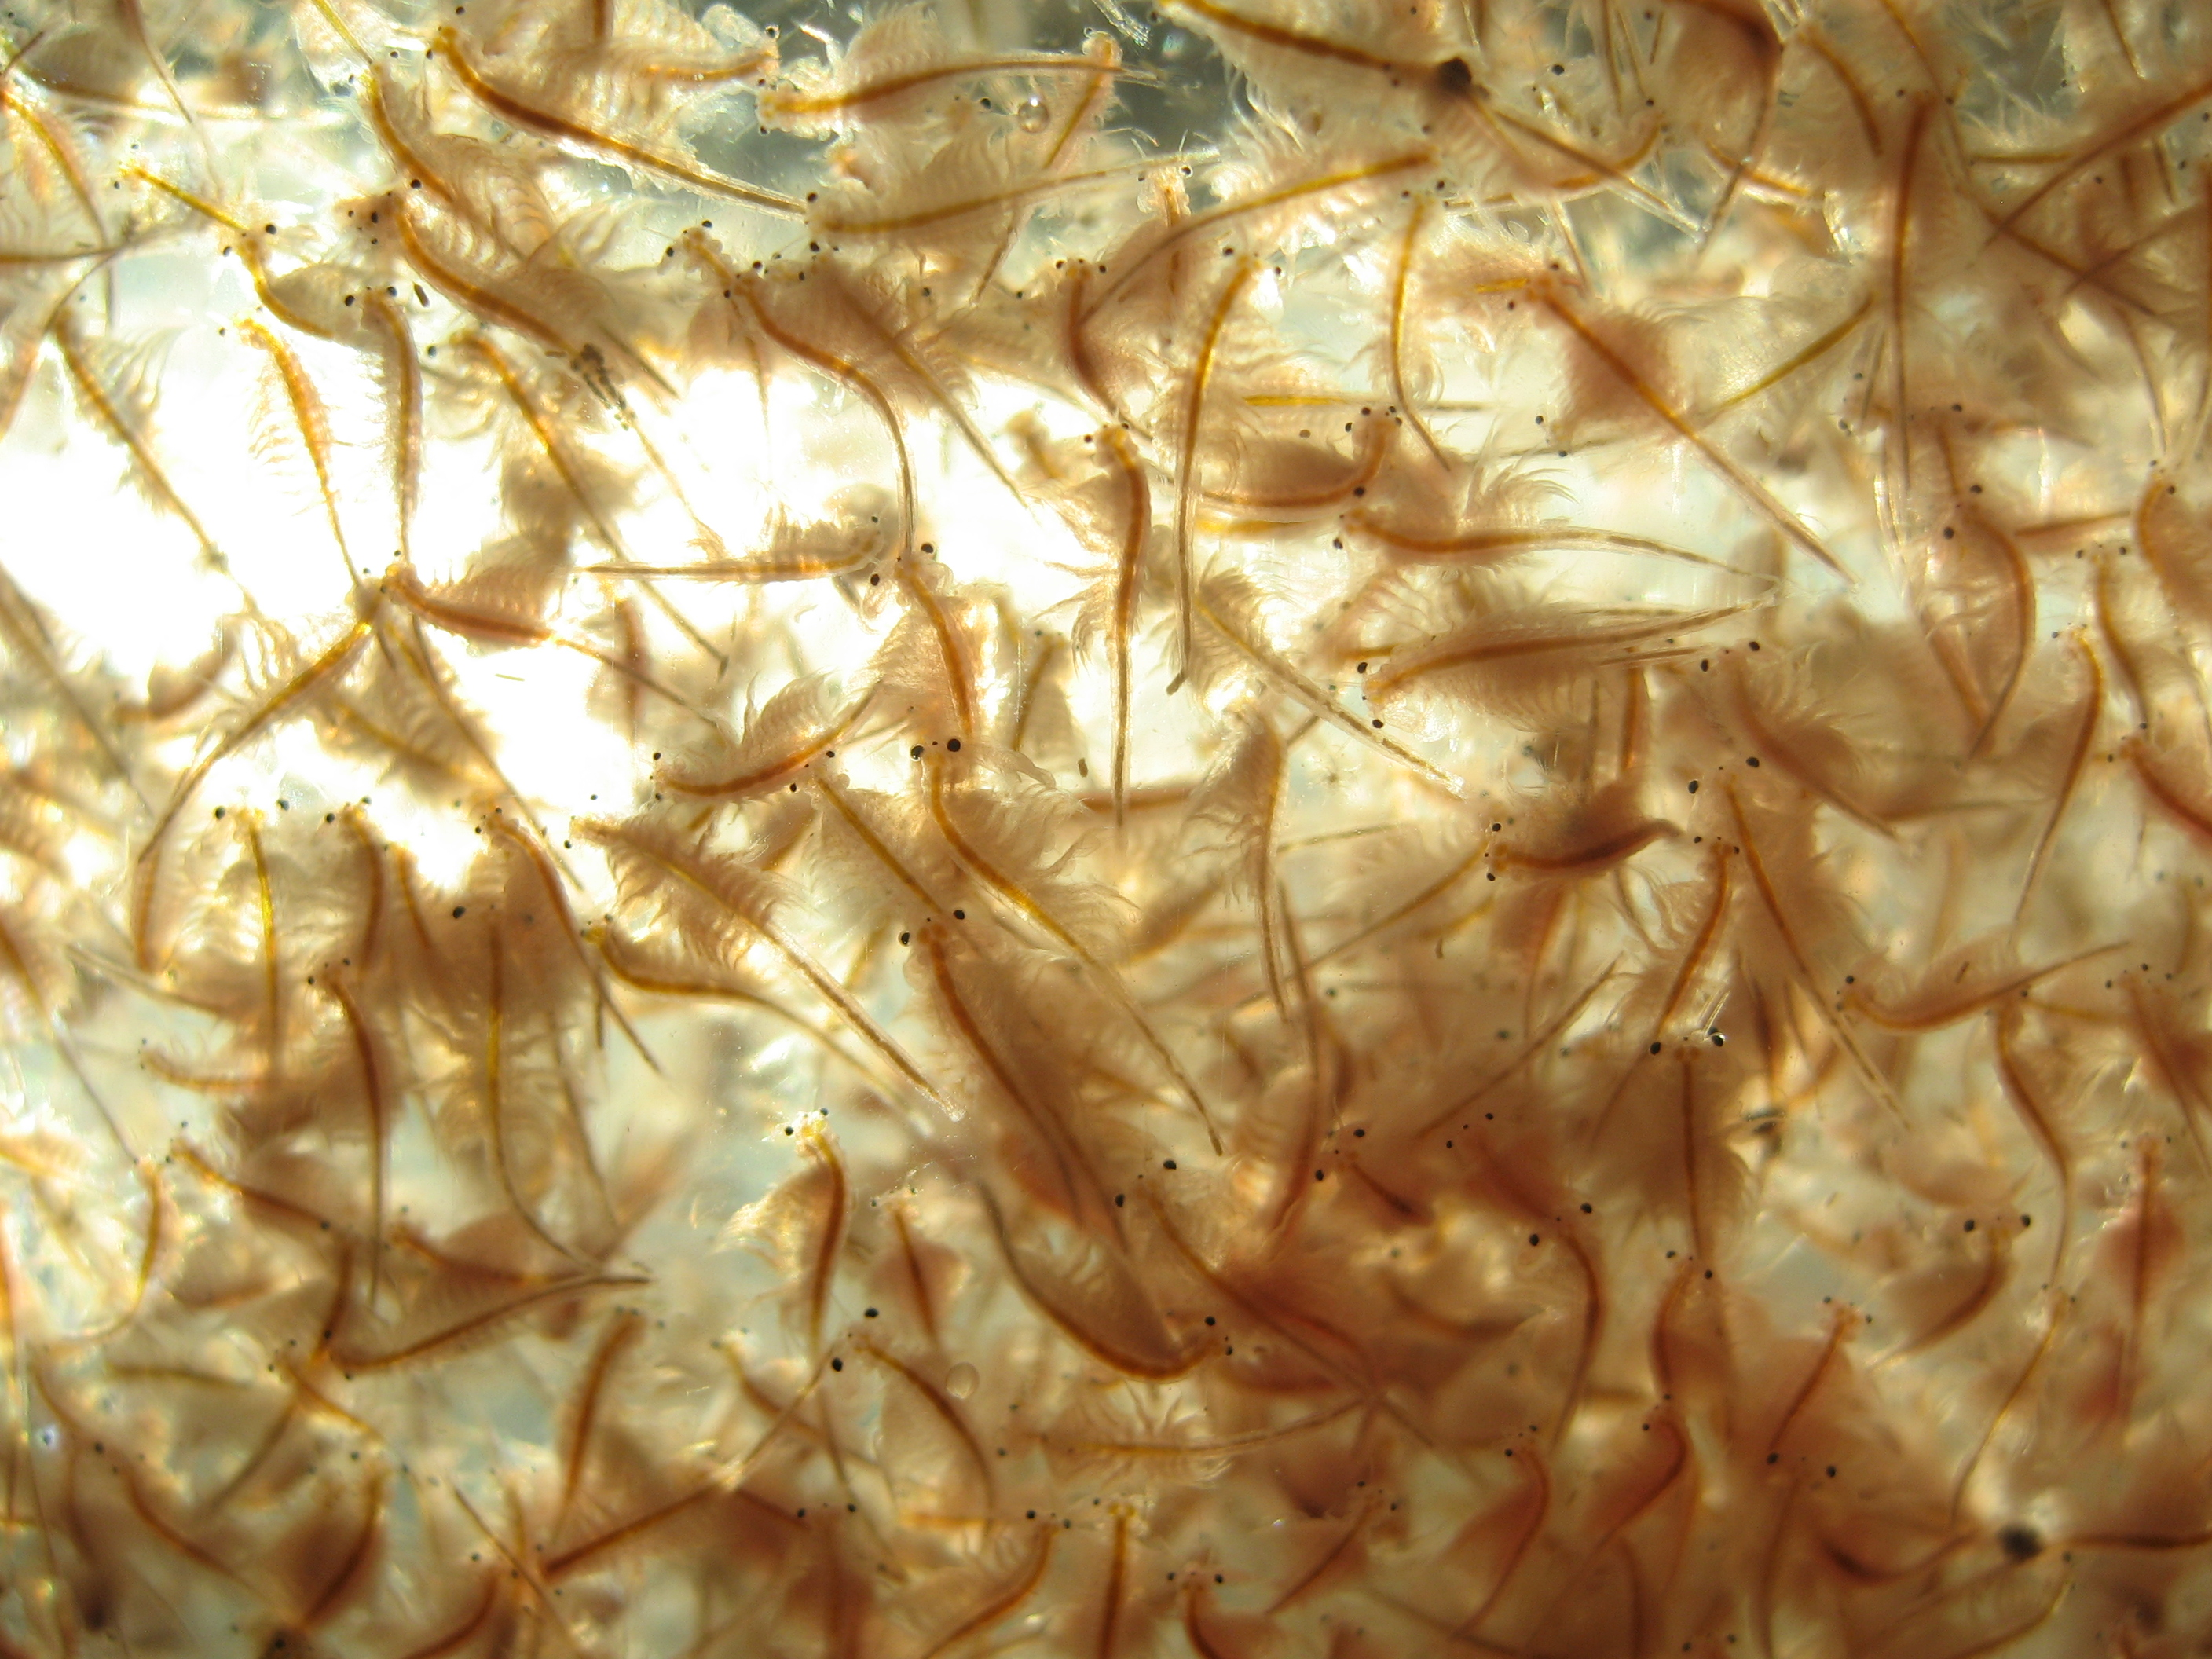 http://upload.wikimedia.org/wikipedia/commons/8/82/Live_brine_shrimp.jpg